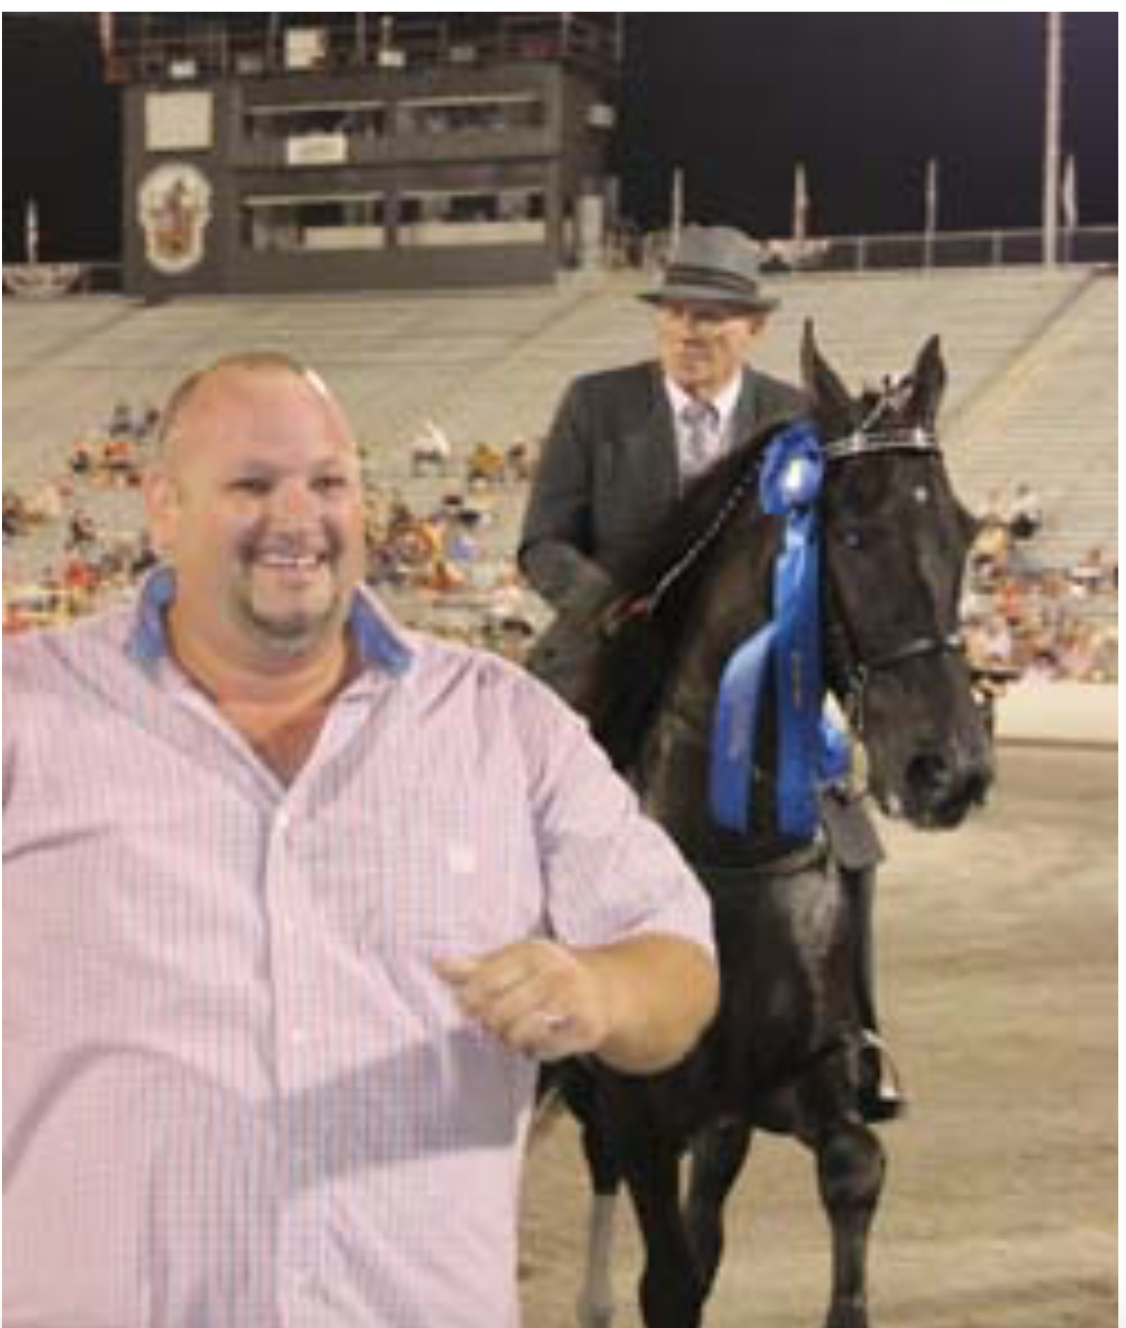 Walking Horse Trainers Association Mr. Edgar Abernathy and Mr. Richard Mitch, World Champion, TN Walking Horse National Celebration - Aug. 26, 2016 Photo Credit The Walking Horse Report